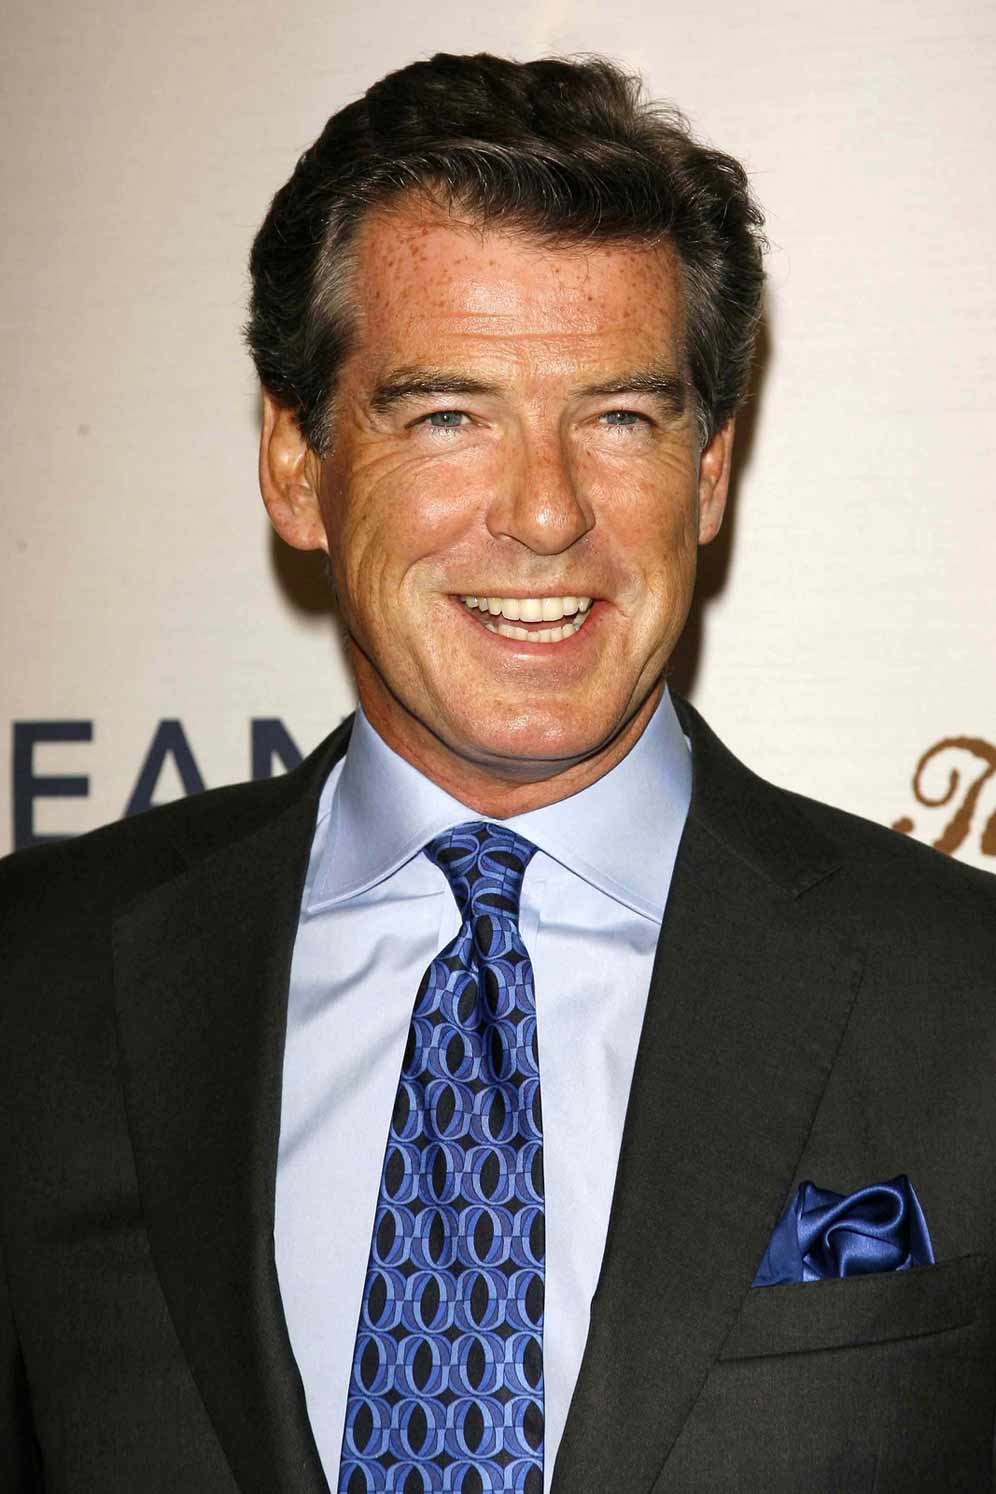 un été a lheure du chic British LOS-ANGELES-Pierce-Brosnan